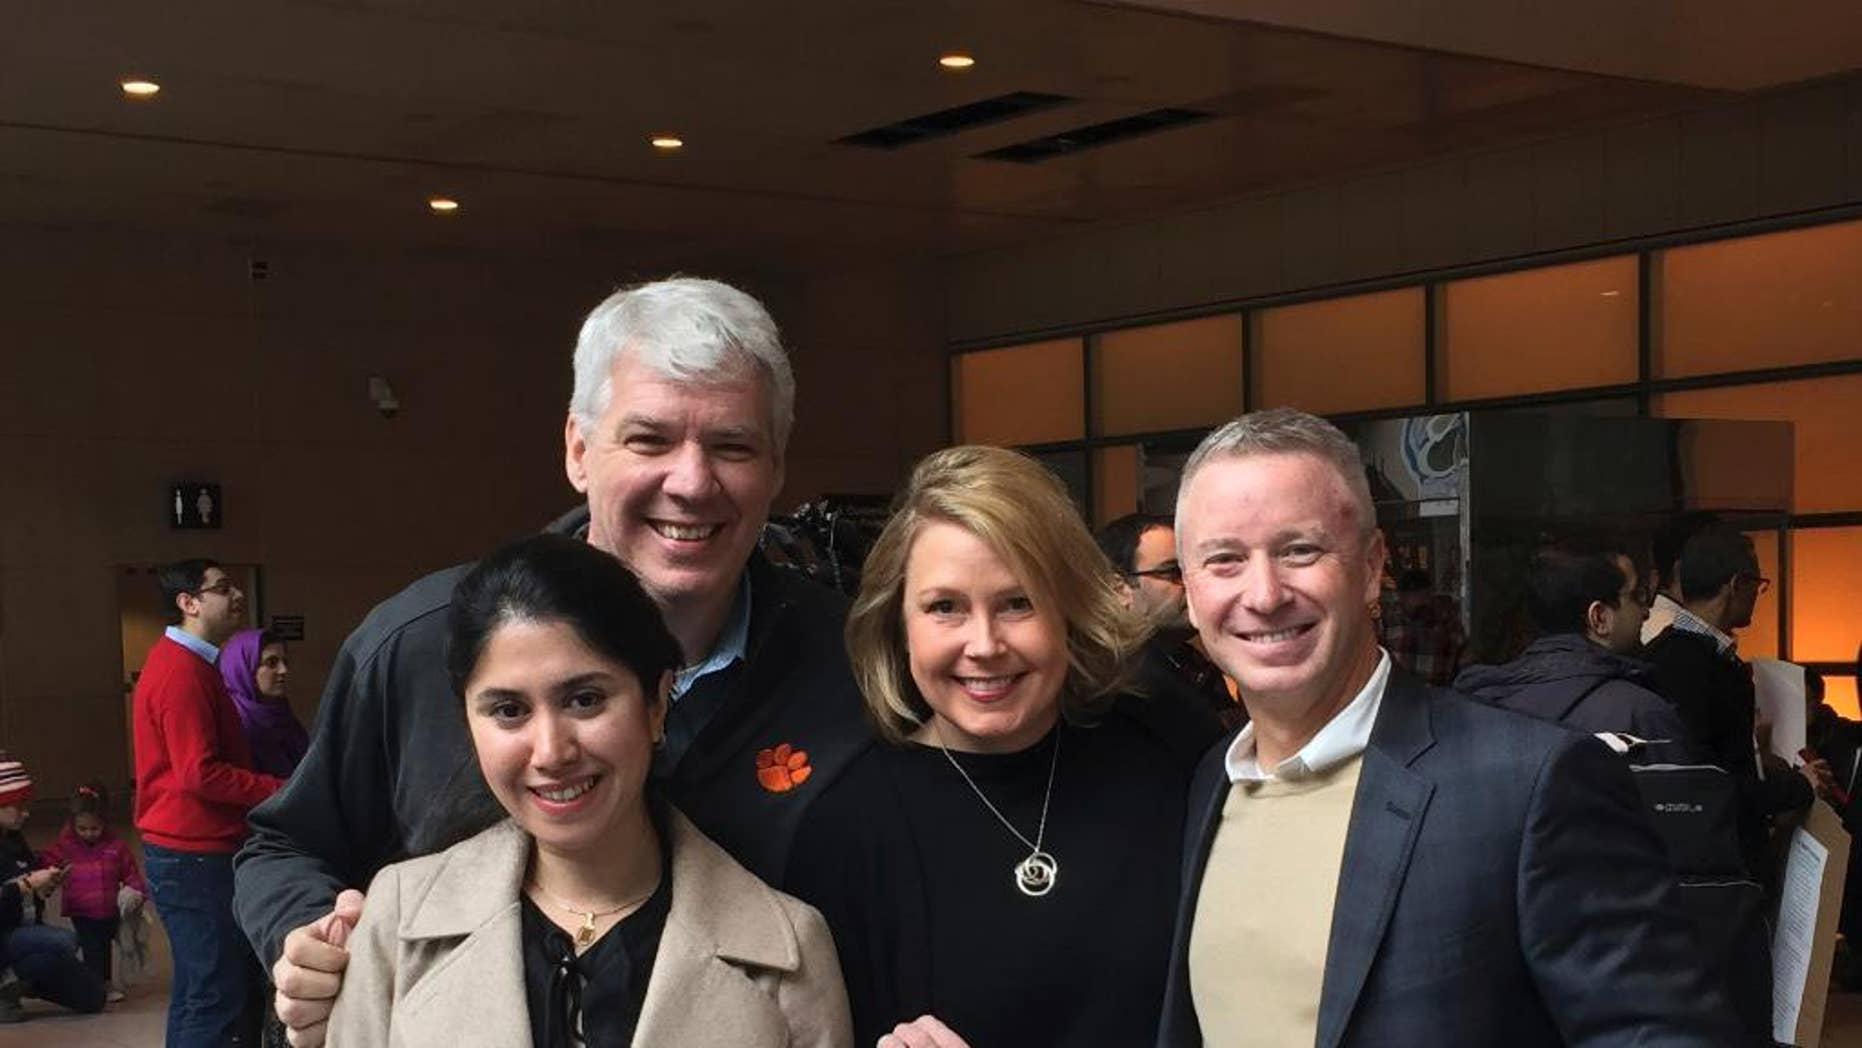 In this photo provided by Eric Martinez, Nazanin Zinouri, front left, and her colleagues from Modjoul, a startup technology firm in Clemson, S.C., pose for a photo after Zinouri arrived at Logan International Airport in Boston on Sunday, Feb. 5, 2017. Zinouri, an Iranian engineer who had been blocked from returning to South Carolina by President Donald Trump's travel ban against seven Muslim nations, returned to the U.S. on Sunday. Modjoul founder Martinez, from left, co-worker Jen Thorson and Rick Toller stand by Zinouri. (courtesy of Eric Martinez via AP)